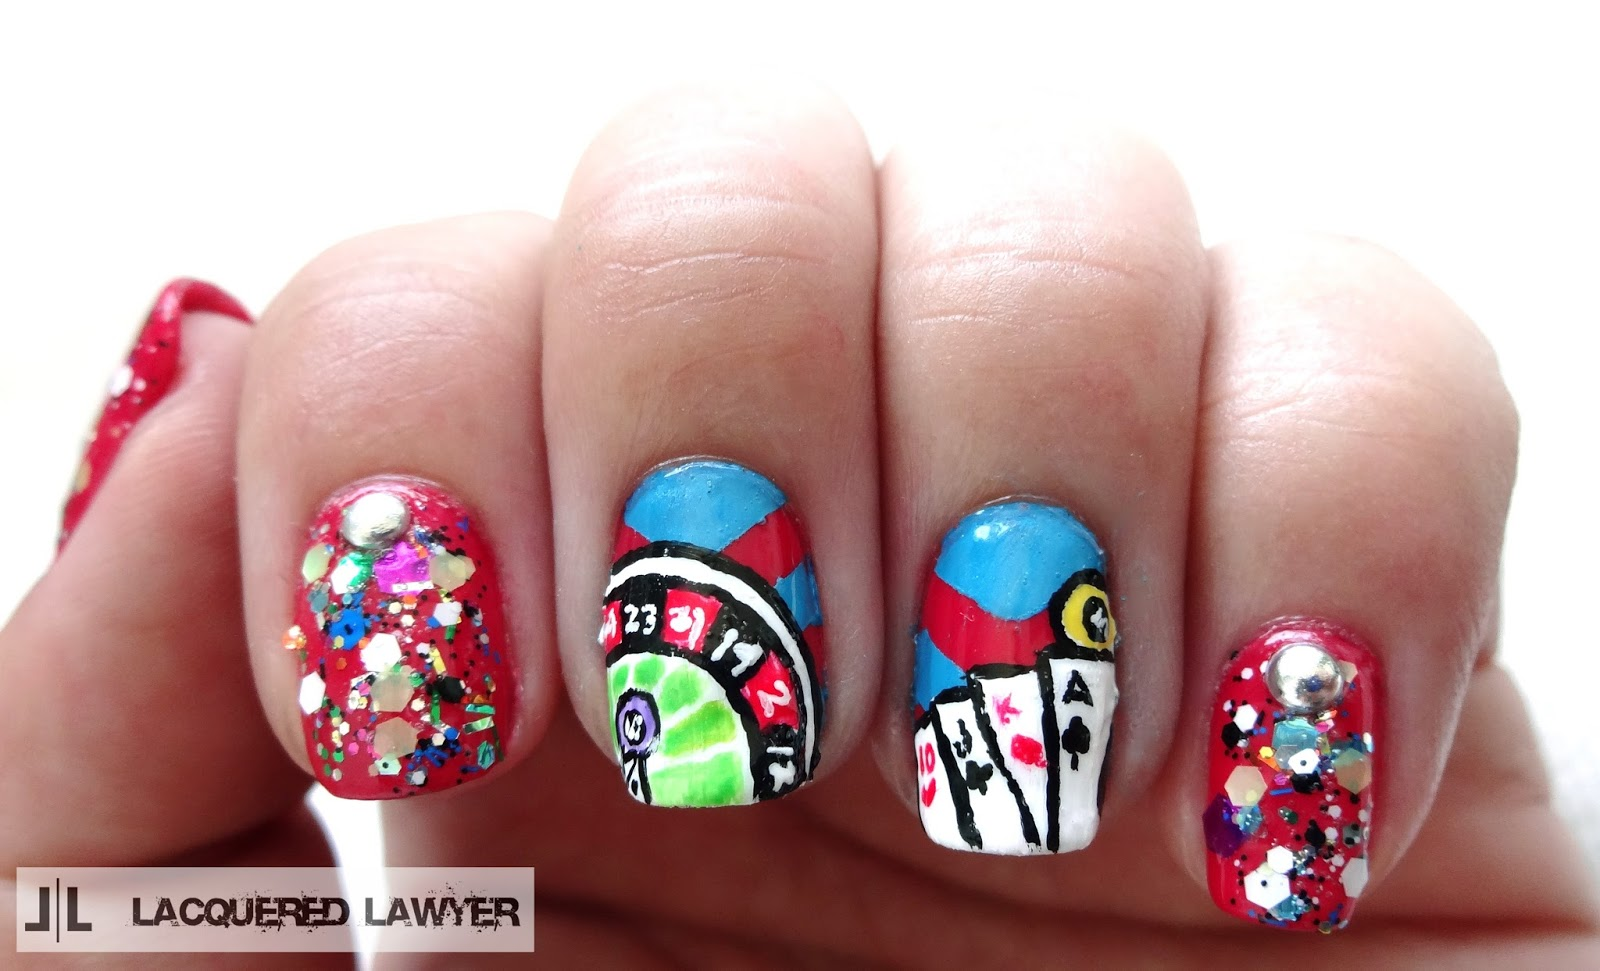 Lacquered Lawyer | Nail Art Blog: Vegas Vacation